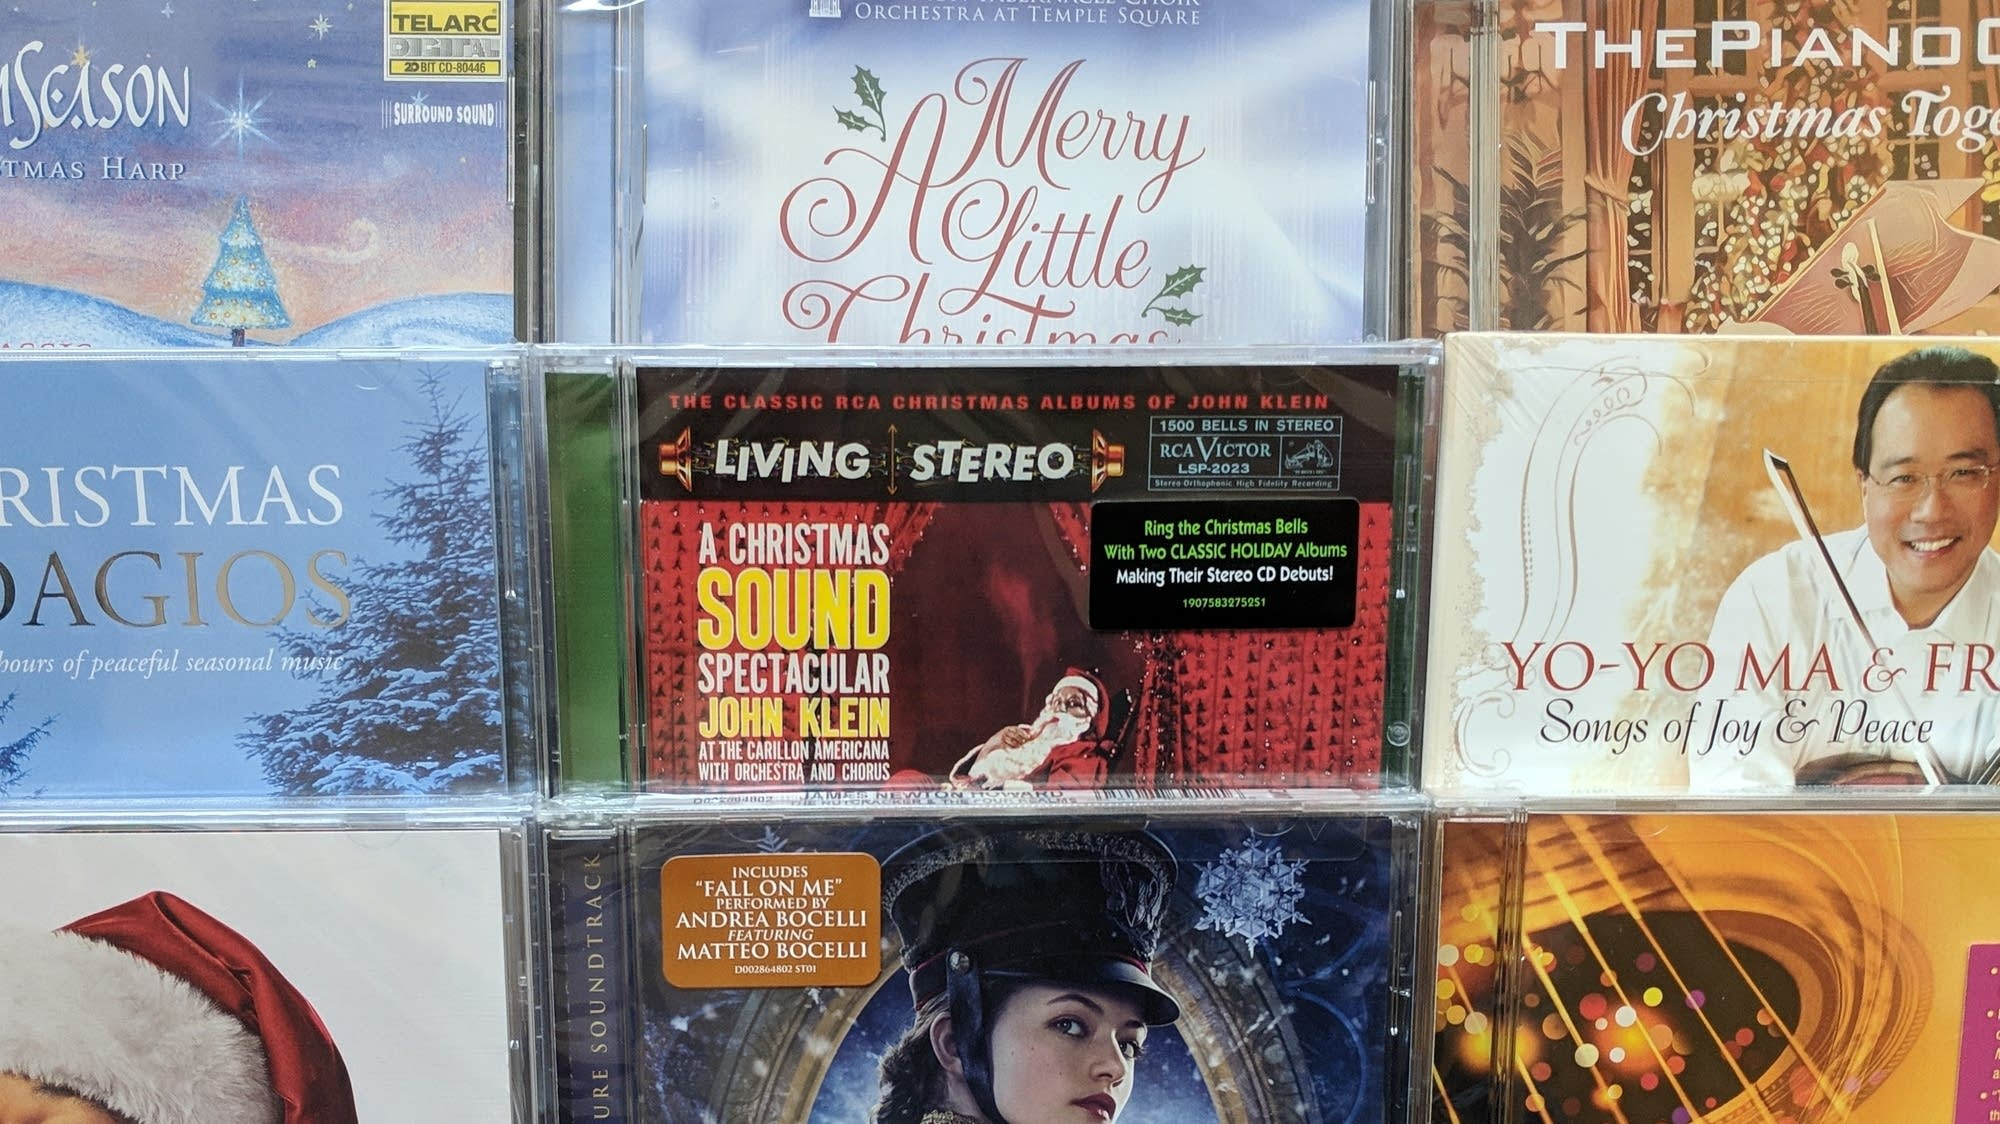 Enter Performance Today\'s Eclectic Holiday Giveaway | Your Classical ...